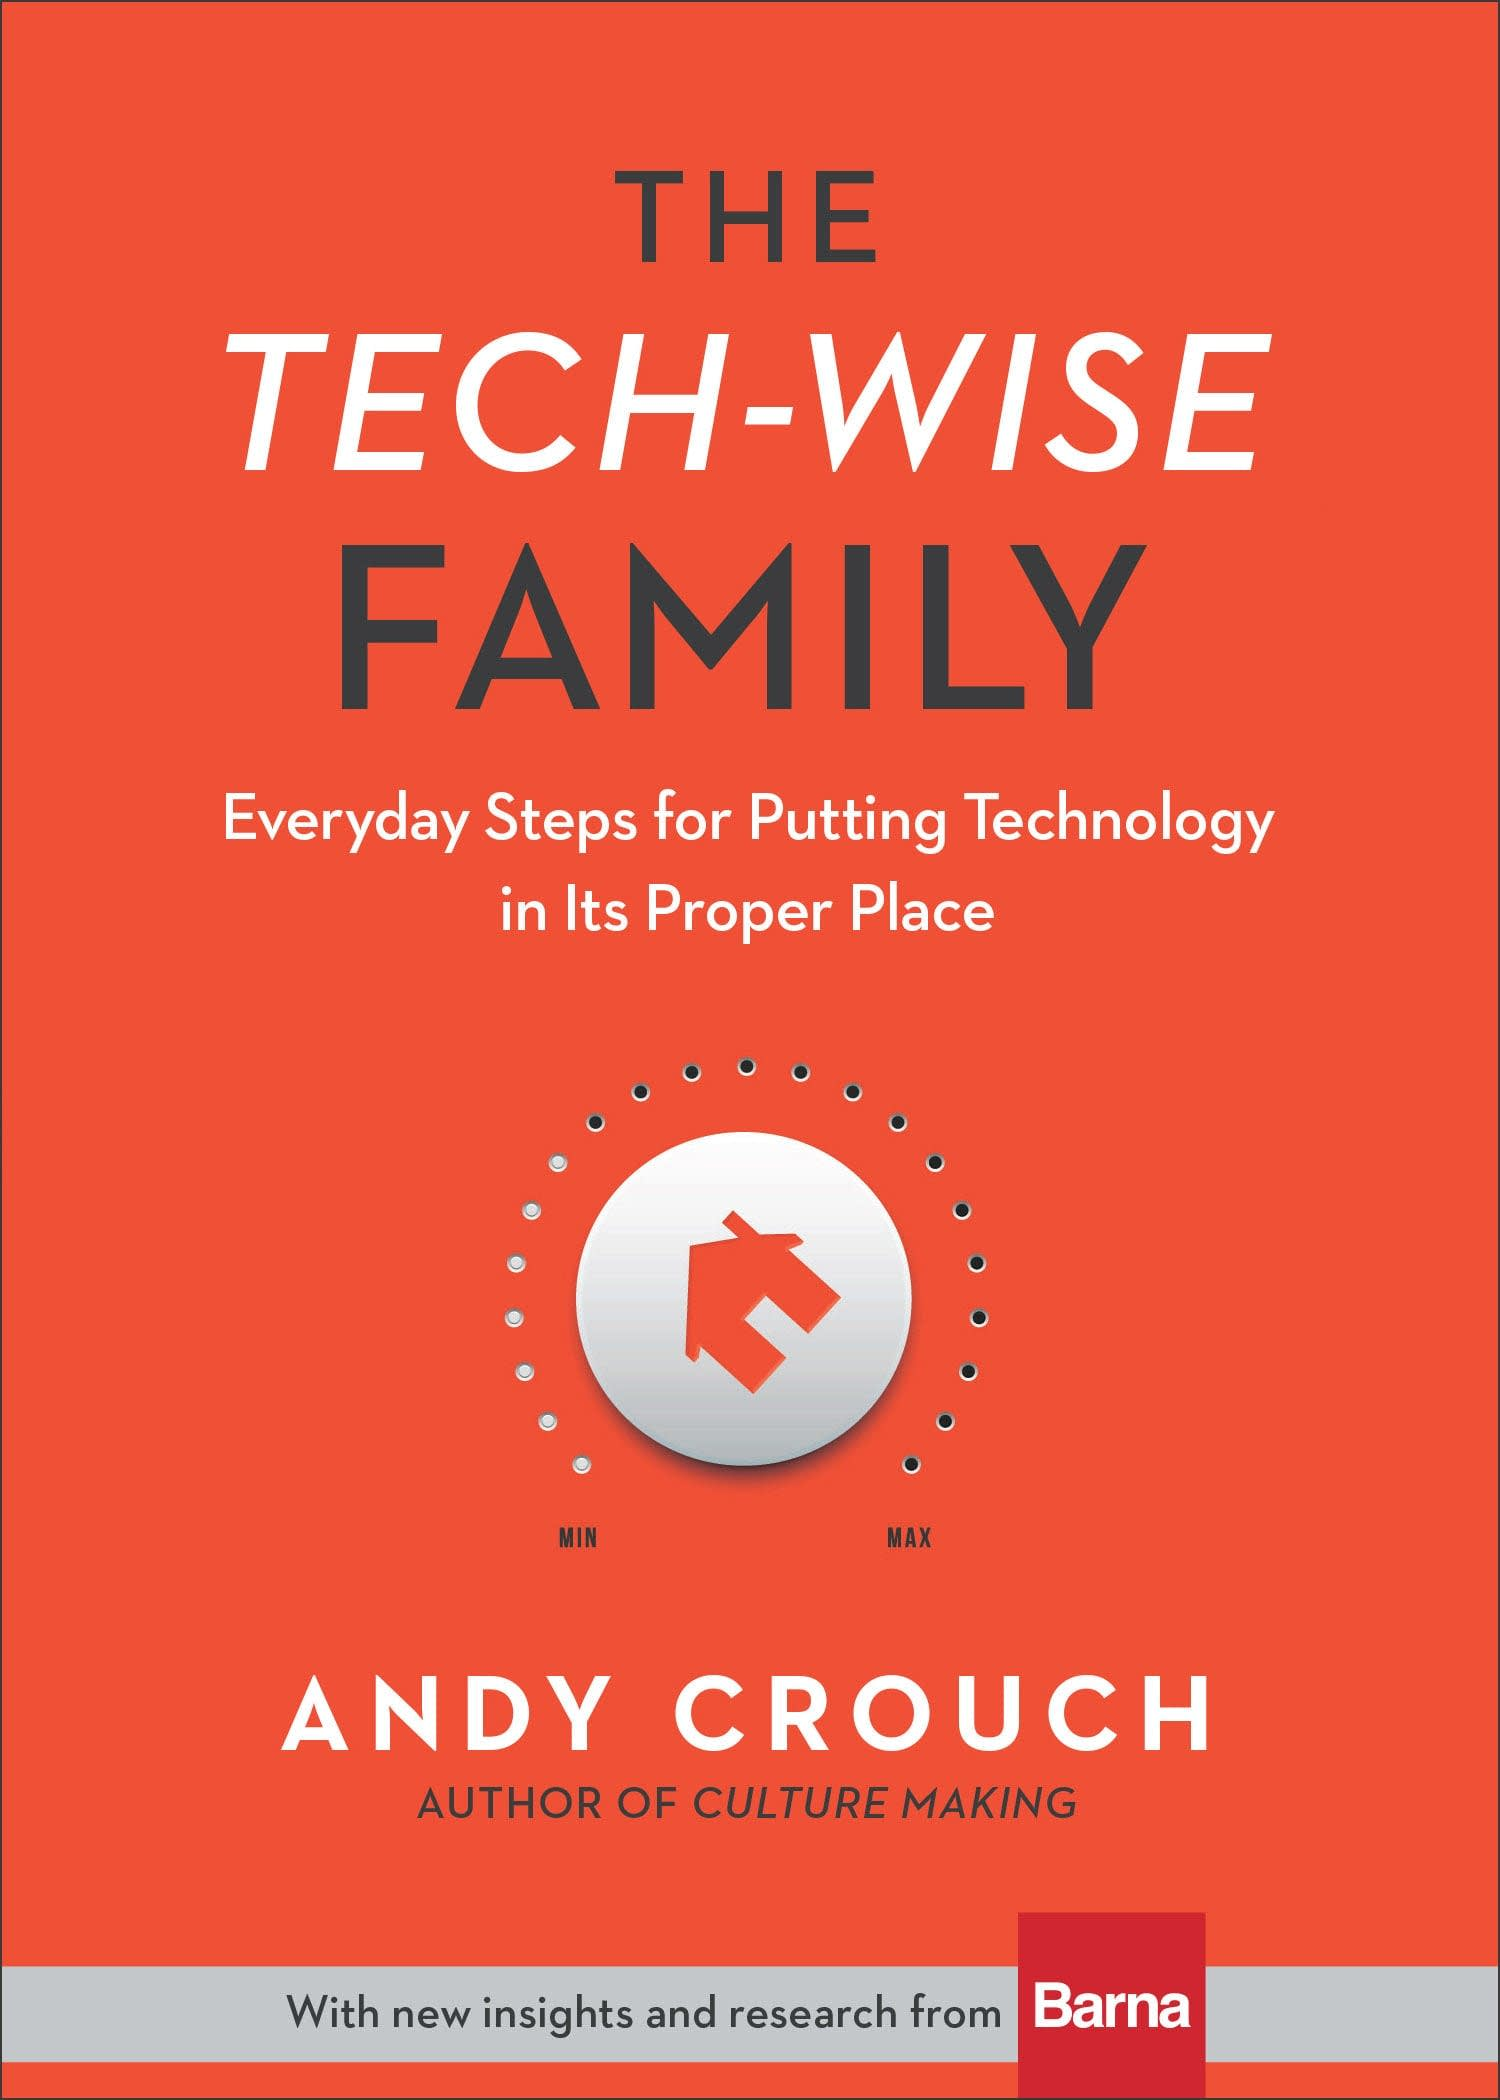 'The Tech-Wise Family' by Andy Crouch